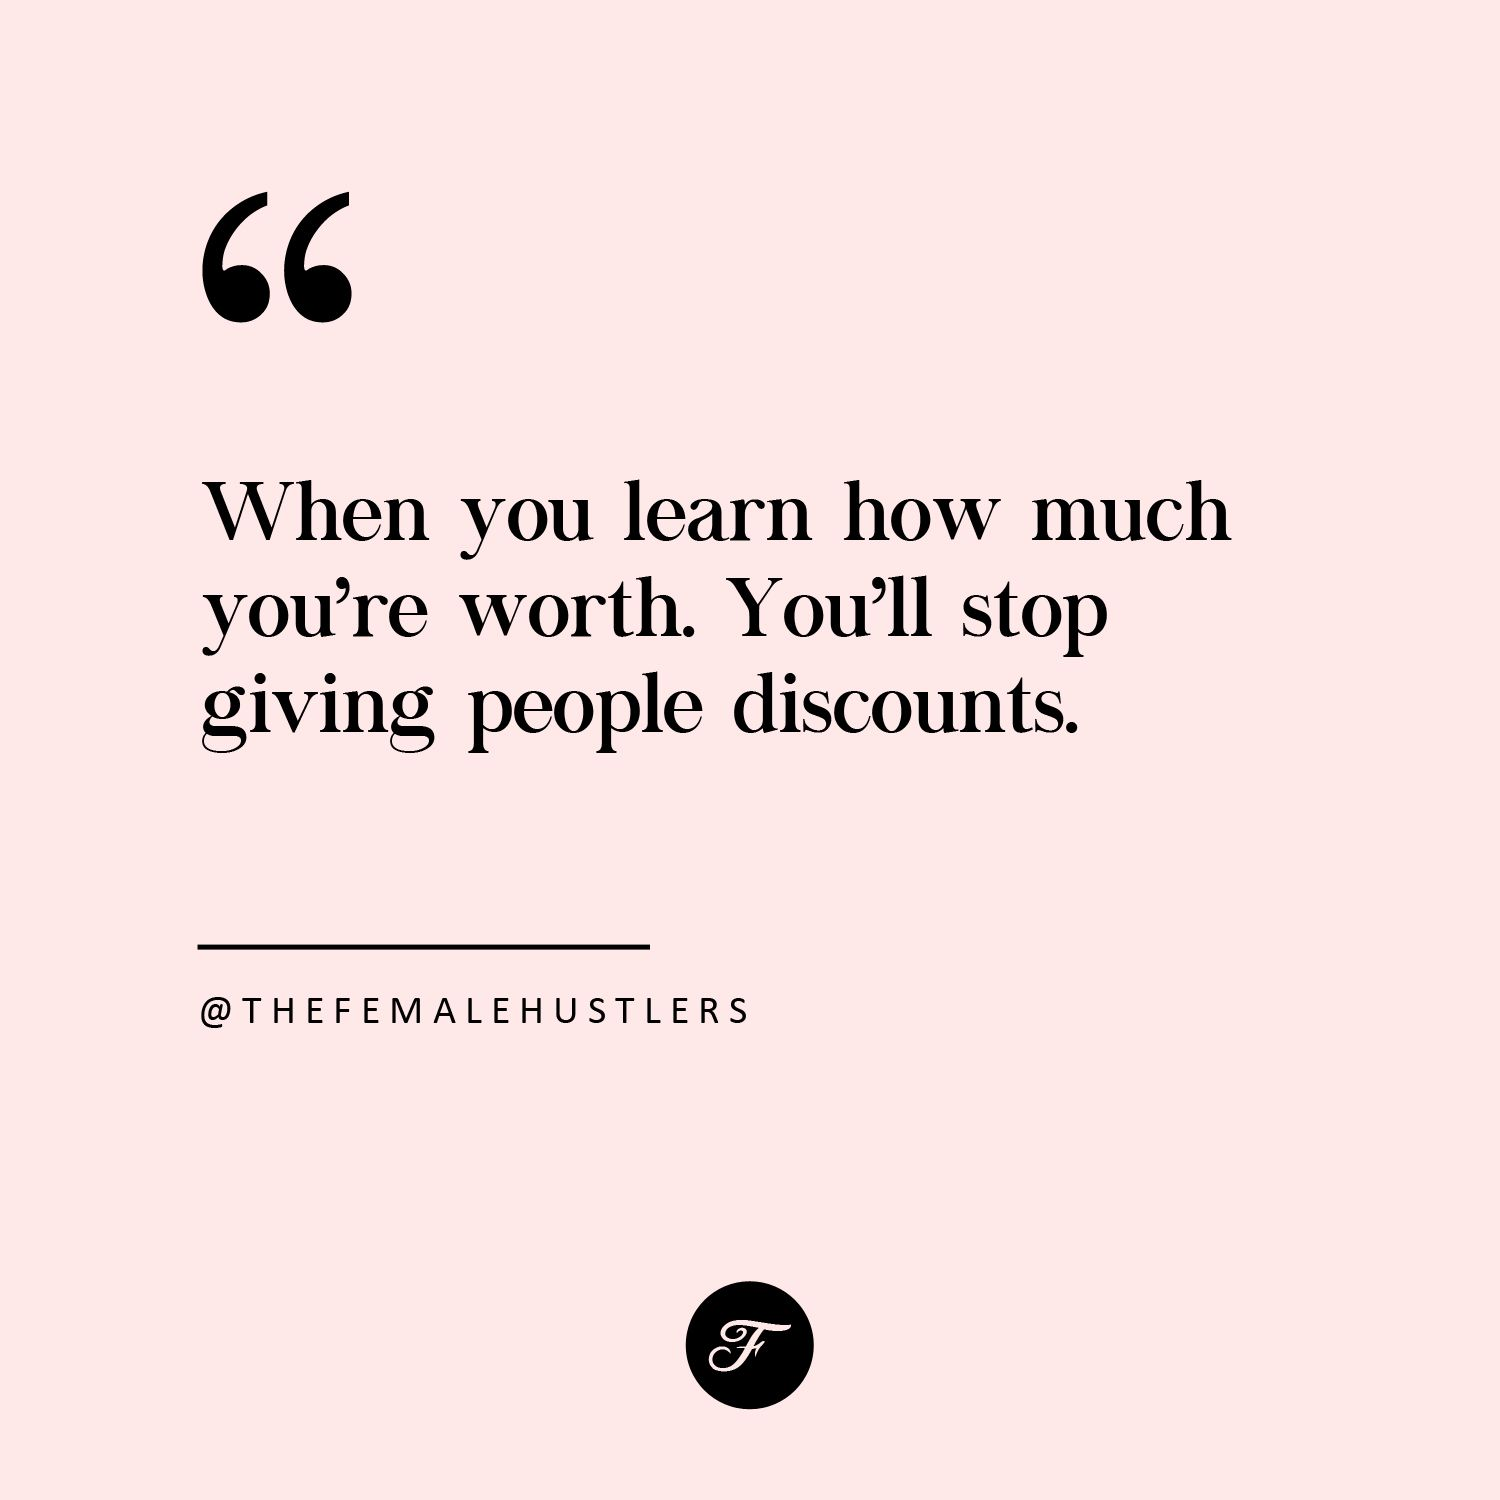 More Of These Quotes On Instagram Thefemalehustlers Queen